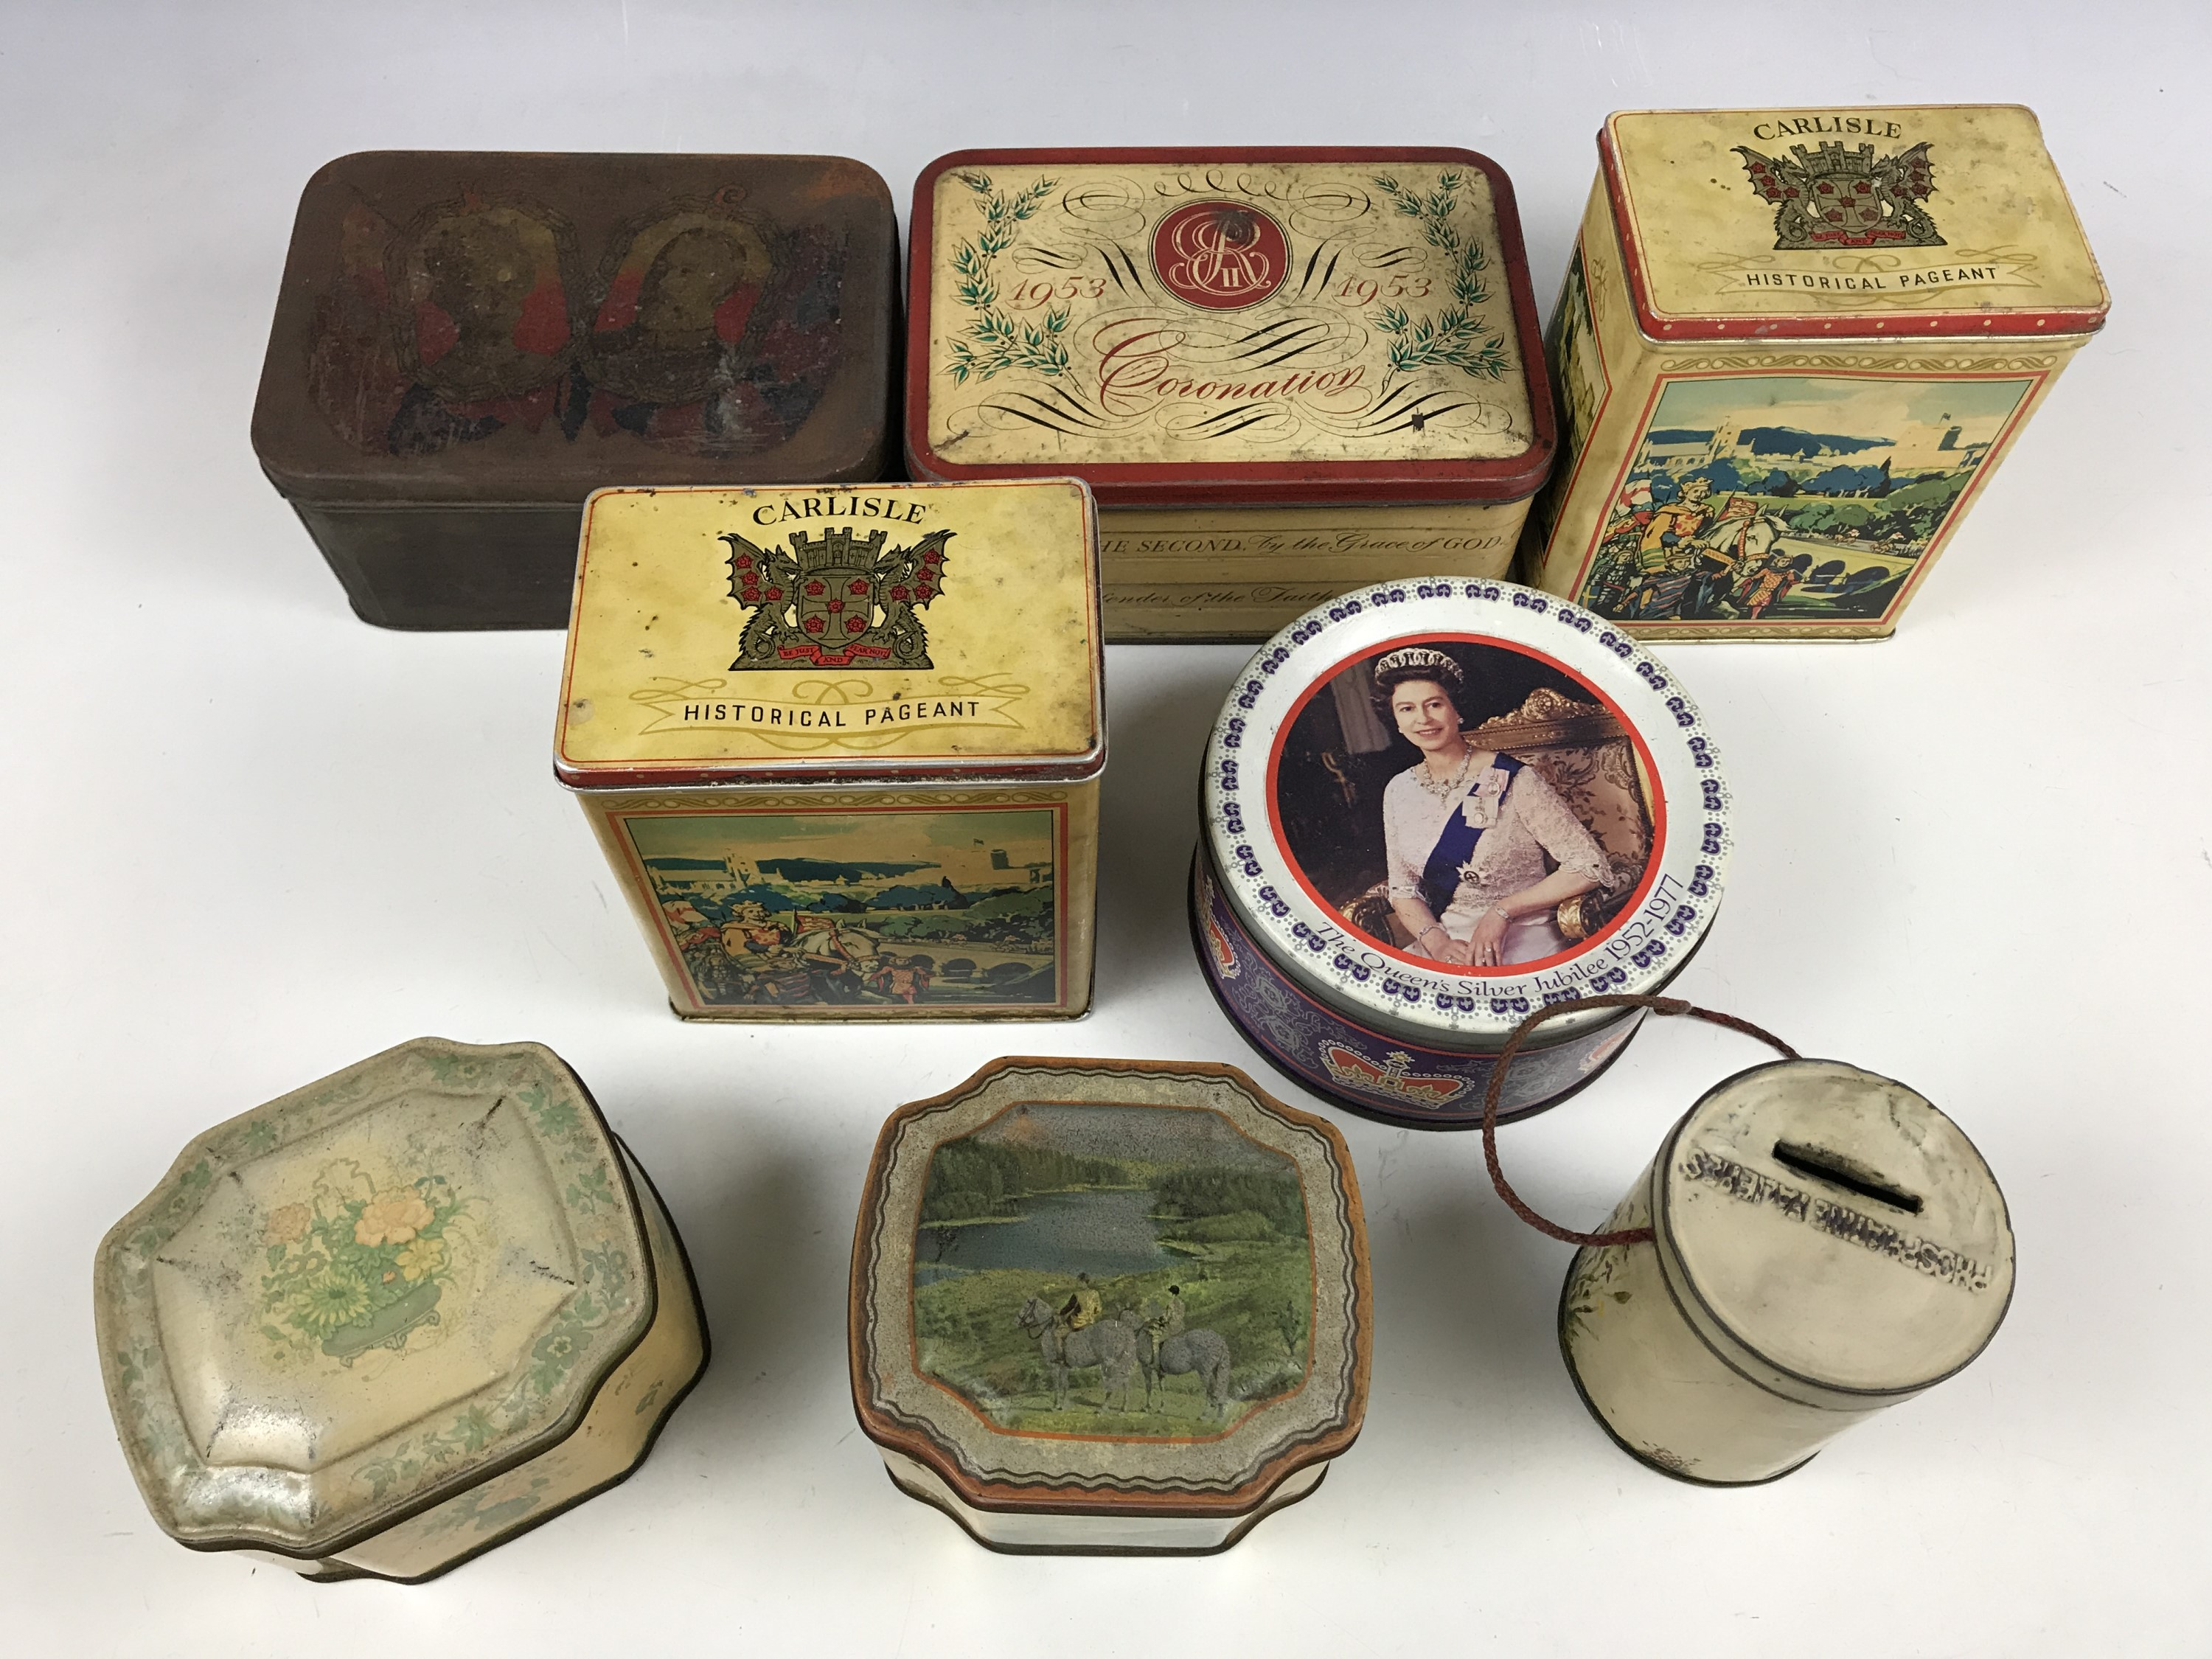 Lot 13 - Royal Commemorative and Carlisle historical pageant tinplate boxes